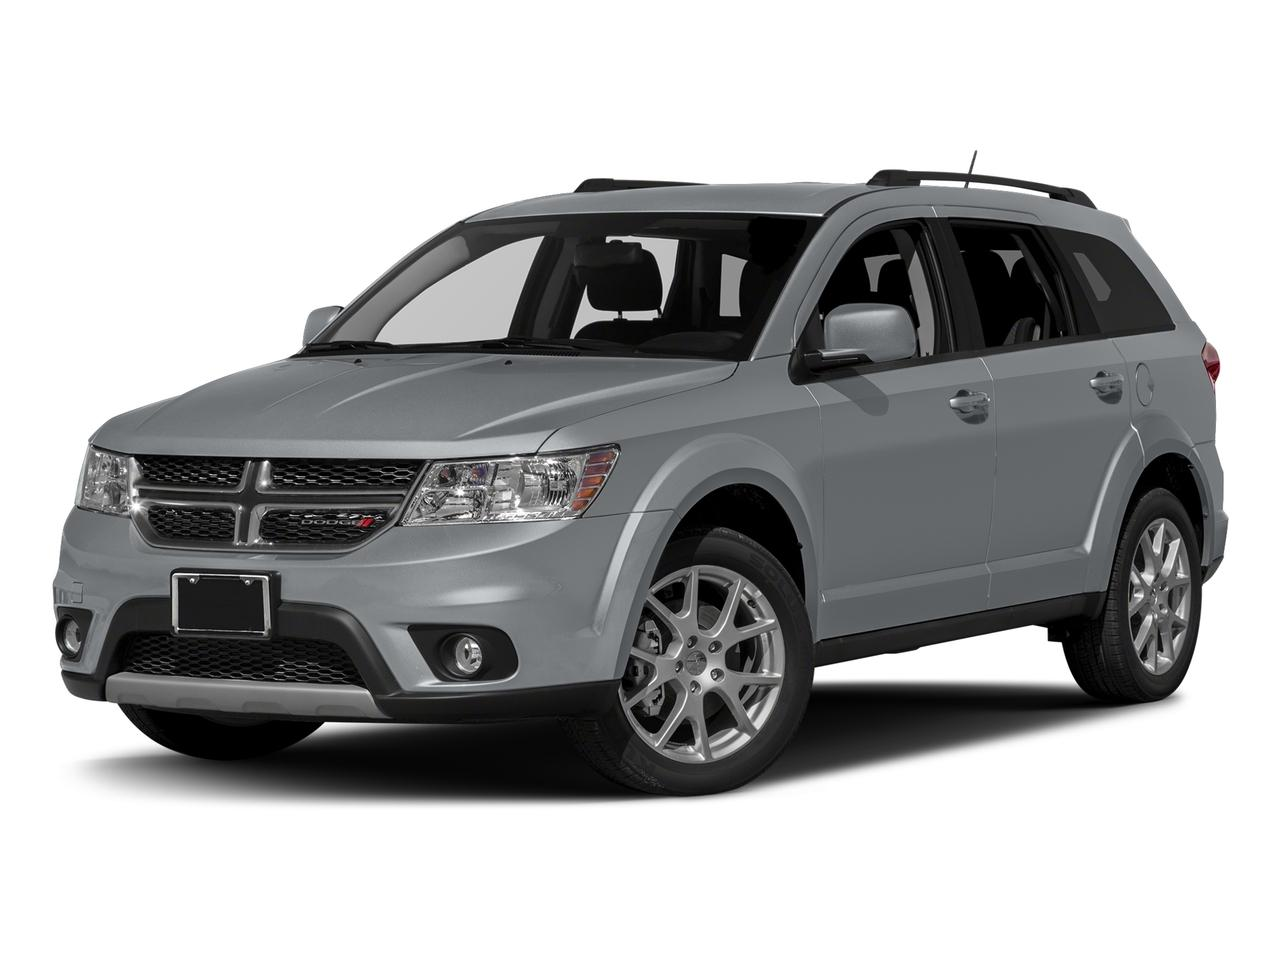 2017 Dodge Journey Vehicle Photo in San Antonio, TX 78238